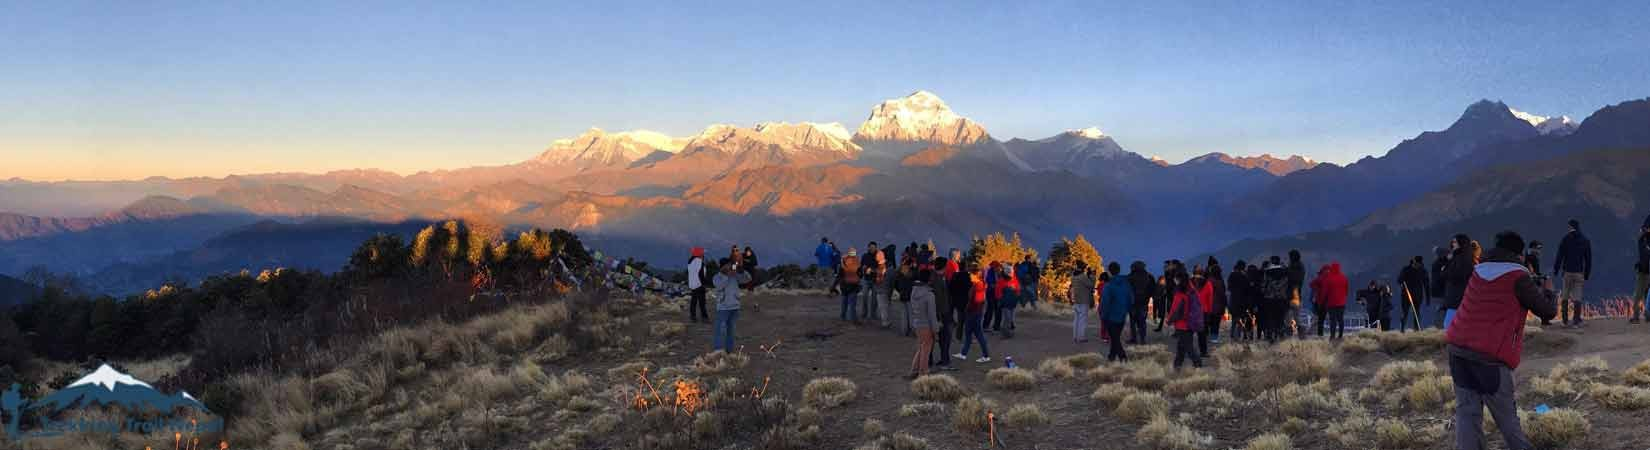 PoonHill: Views Point of Poon Hill Trekking